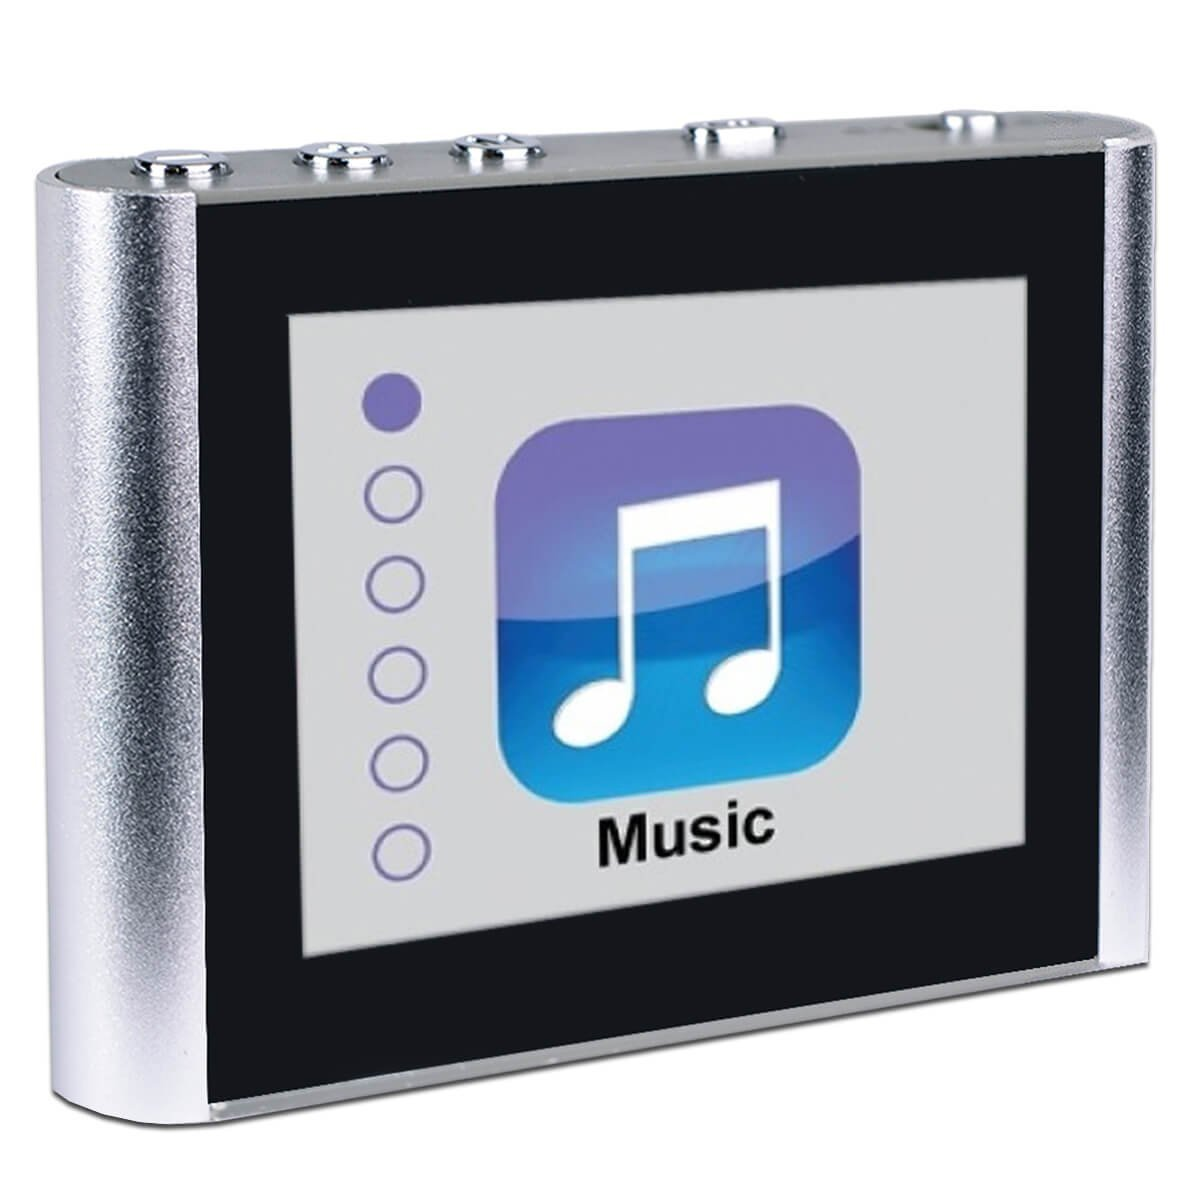 Amazon.com: Eclipse Mach Speed 4 GB MP3/Video Player with 1.8-Inch  Touchscreen, Voice Recorder and FM Radio - (Red) (Eclipse-T180 RD): Home  Audio & Theater